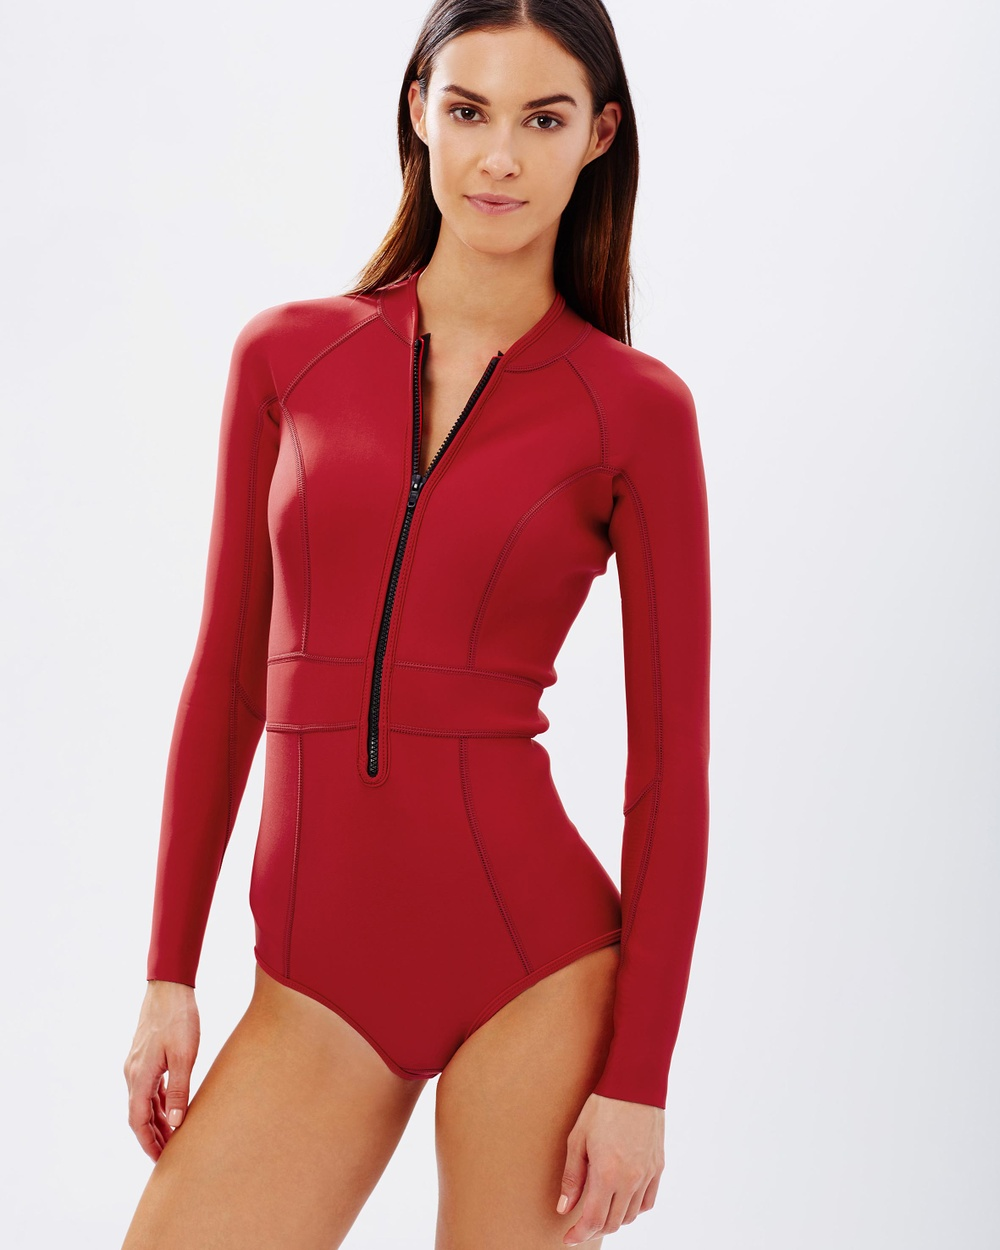 Duskii Saint Tropez Long Sleeve Suit One-Piece / Swimsuit Red Saint Tropez Long Sleeve Suit